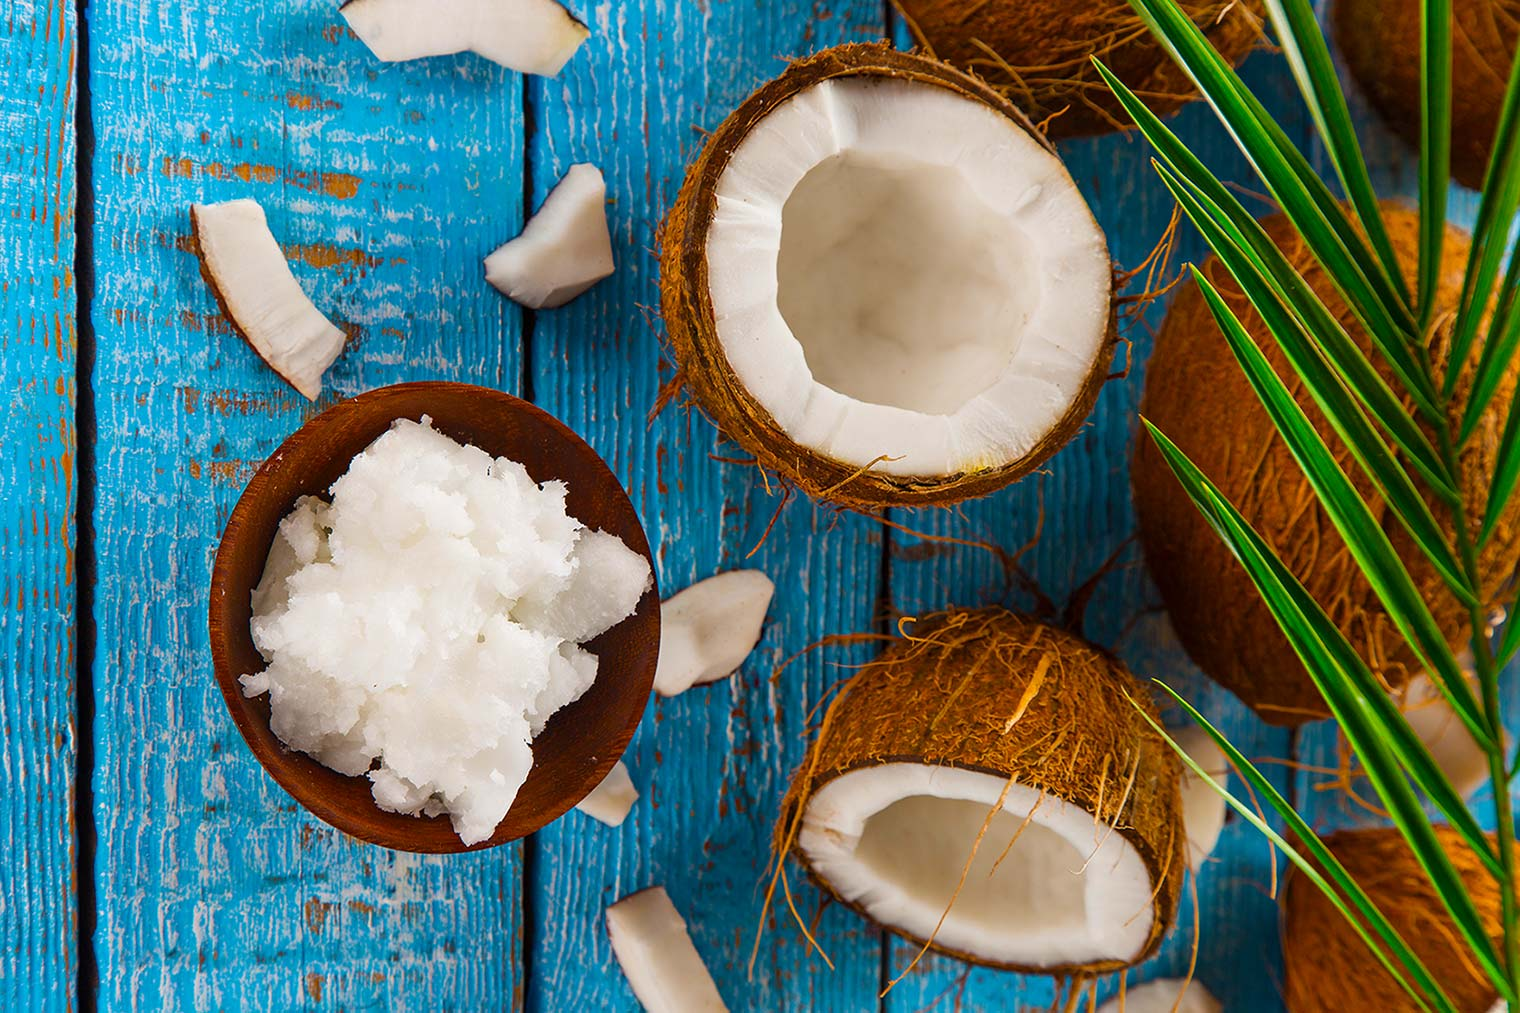 How To Get Beautiful White Teeth Using Coconut Oil With the Oil Pulling Method